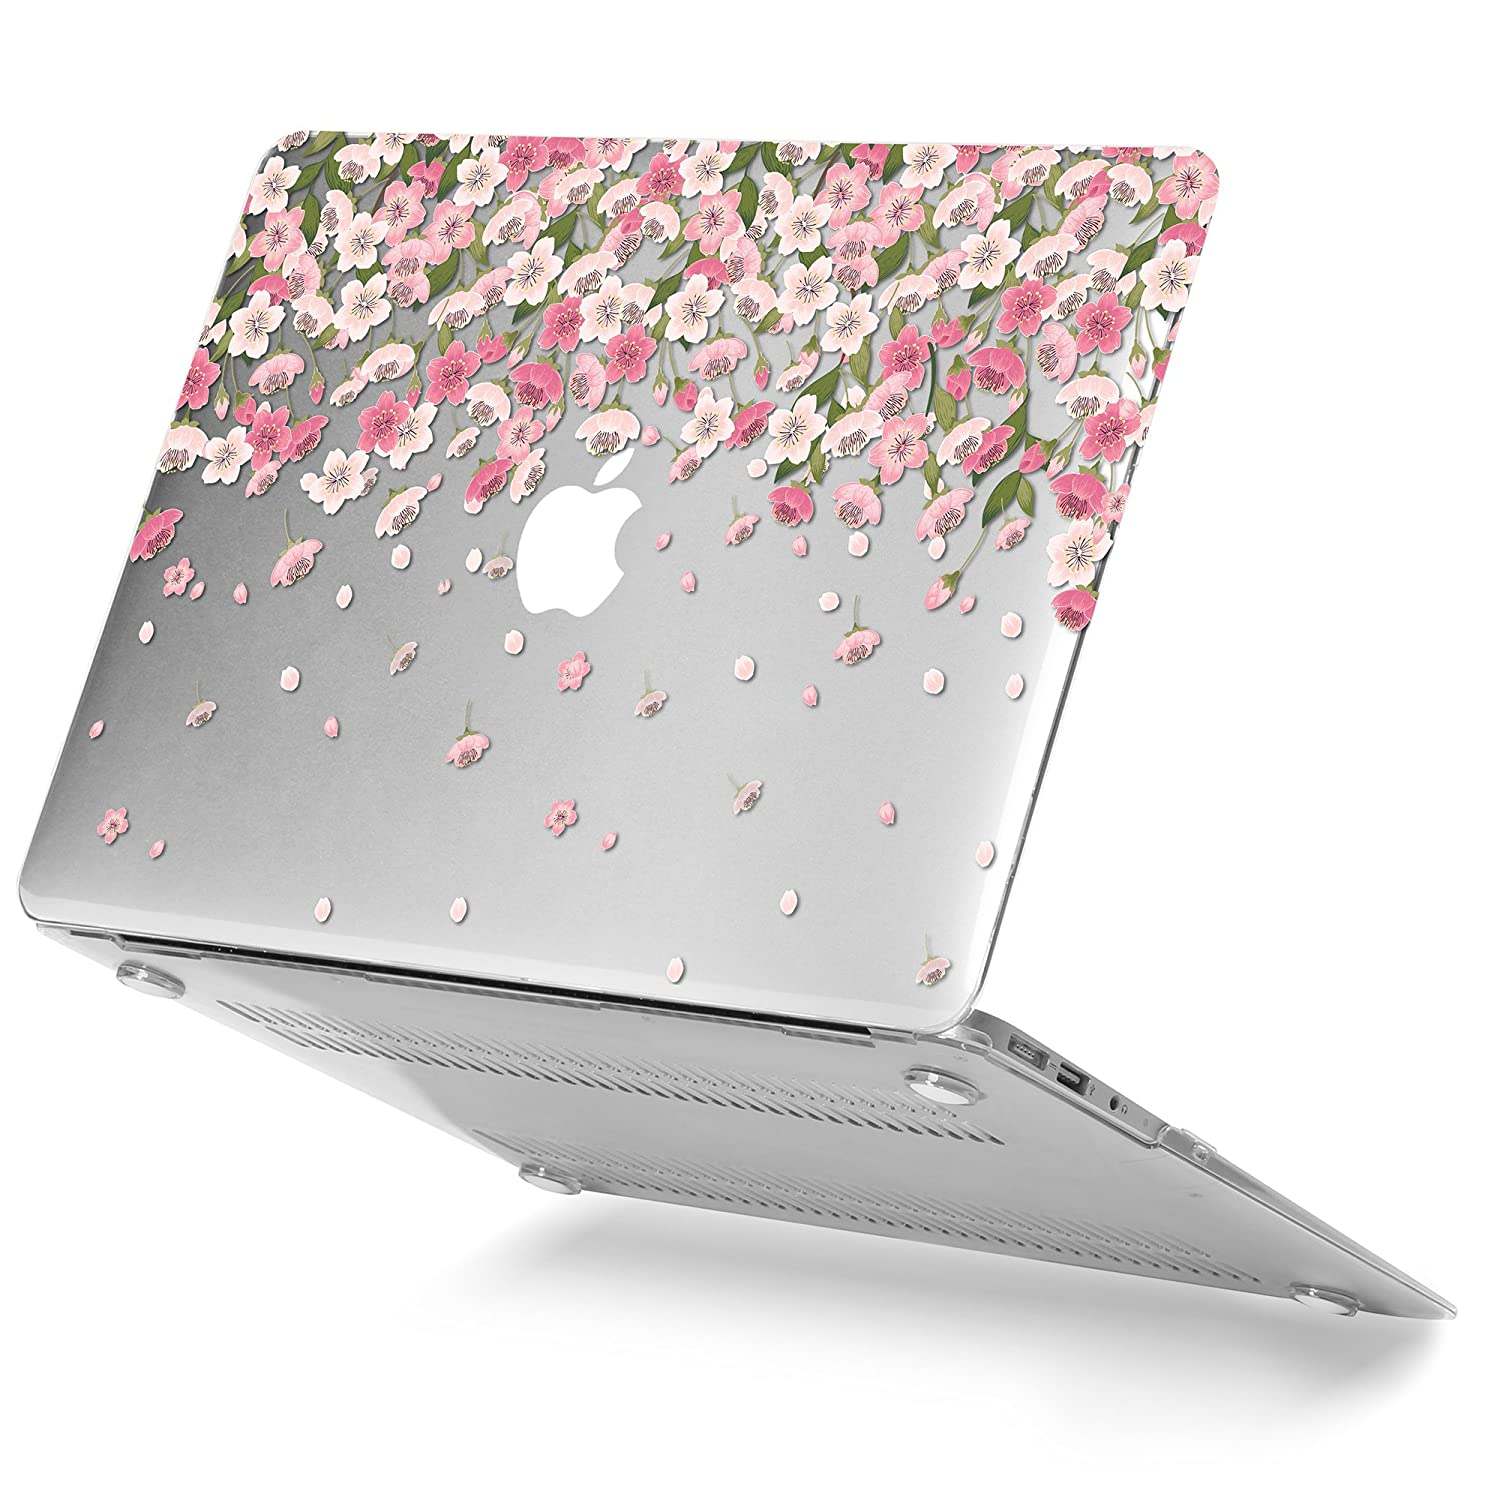 best sneakers 1287b 259e4 Details about GMYLE Plastic Floral Pattern Hard Case for MacBook Air 13  Inch (Model: A1369...